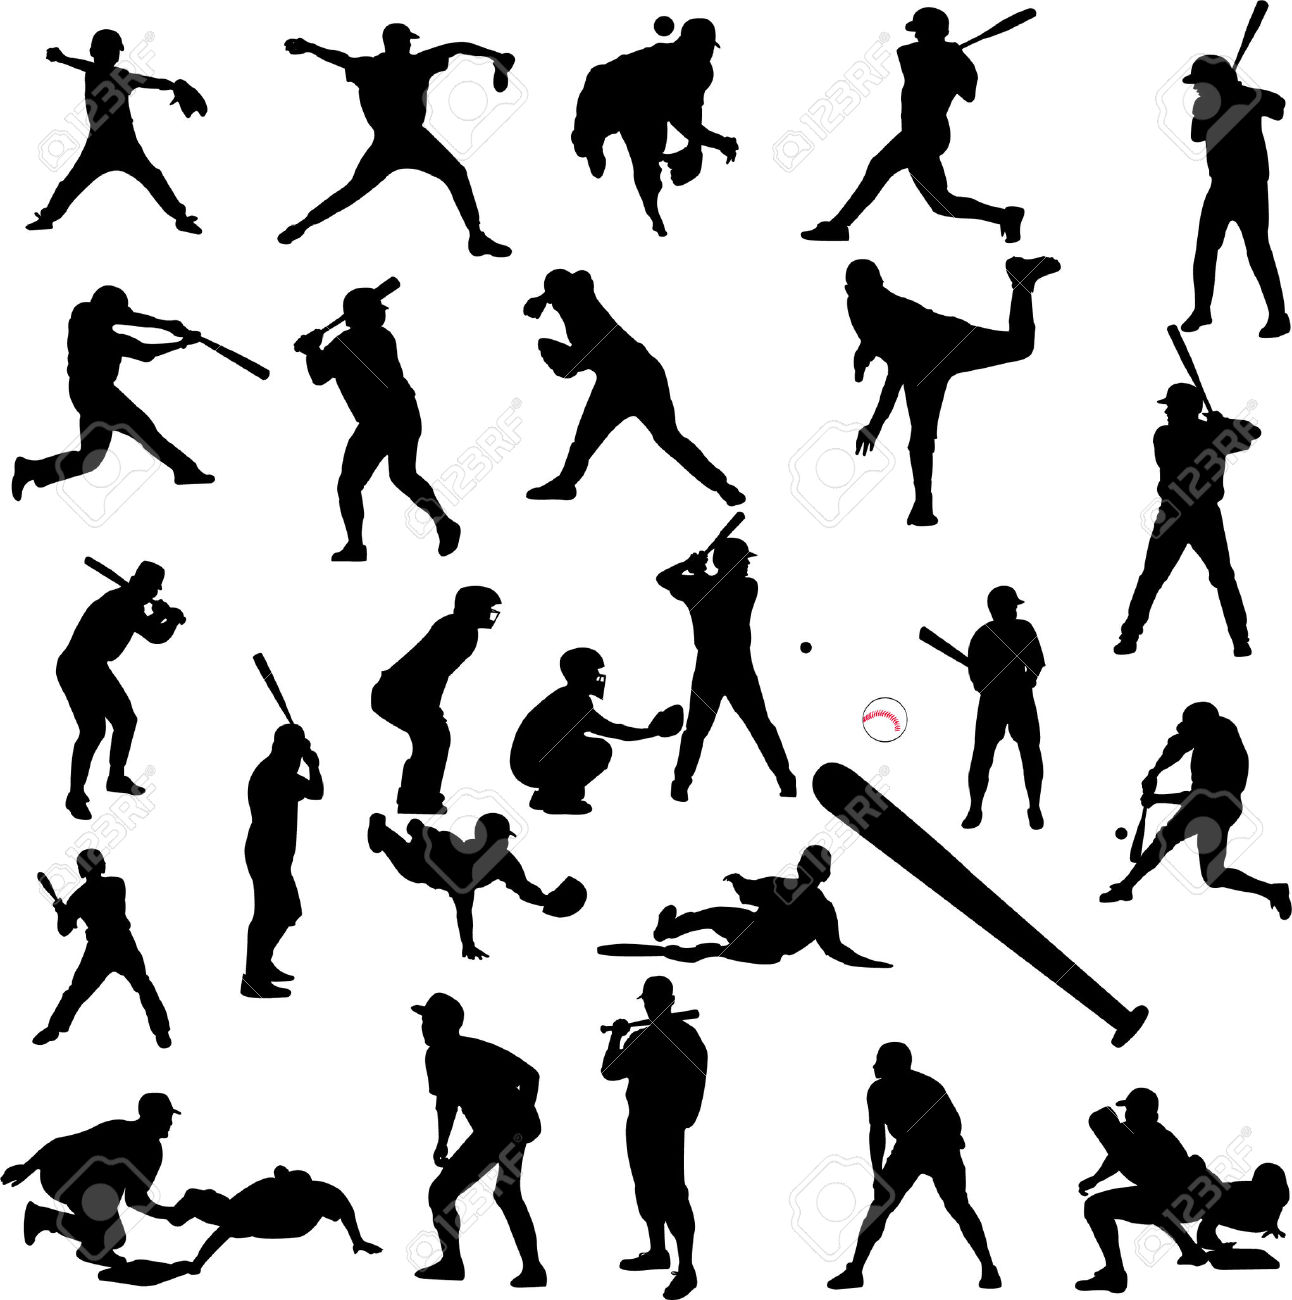 Free Baseball Silhouette Cliparts Download Free Clip Art